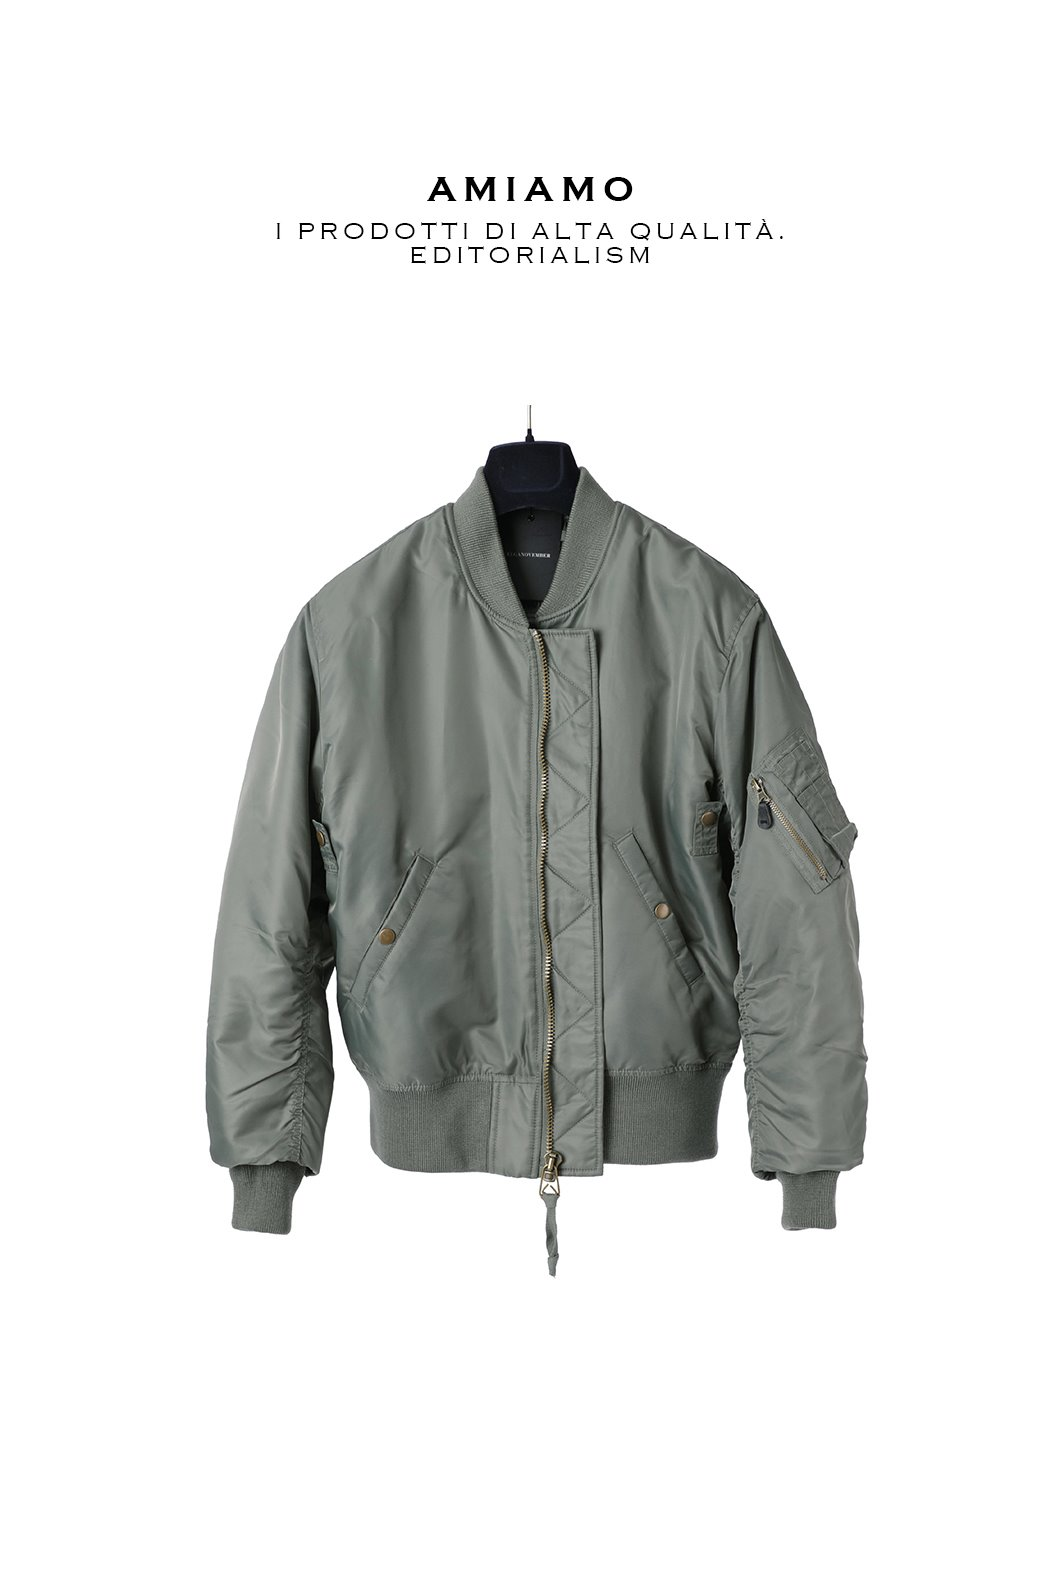 MA-1 Series All Khaki Bomber-Light Khaki한정수량